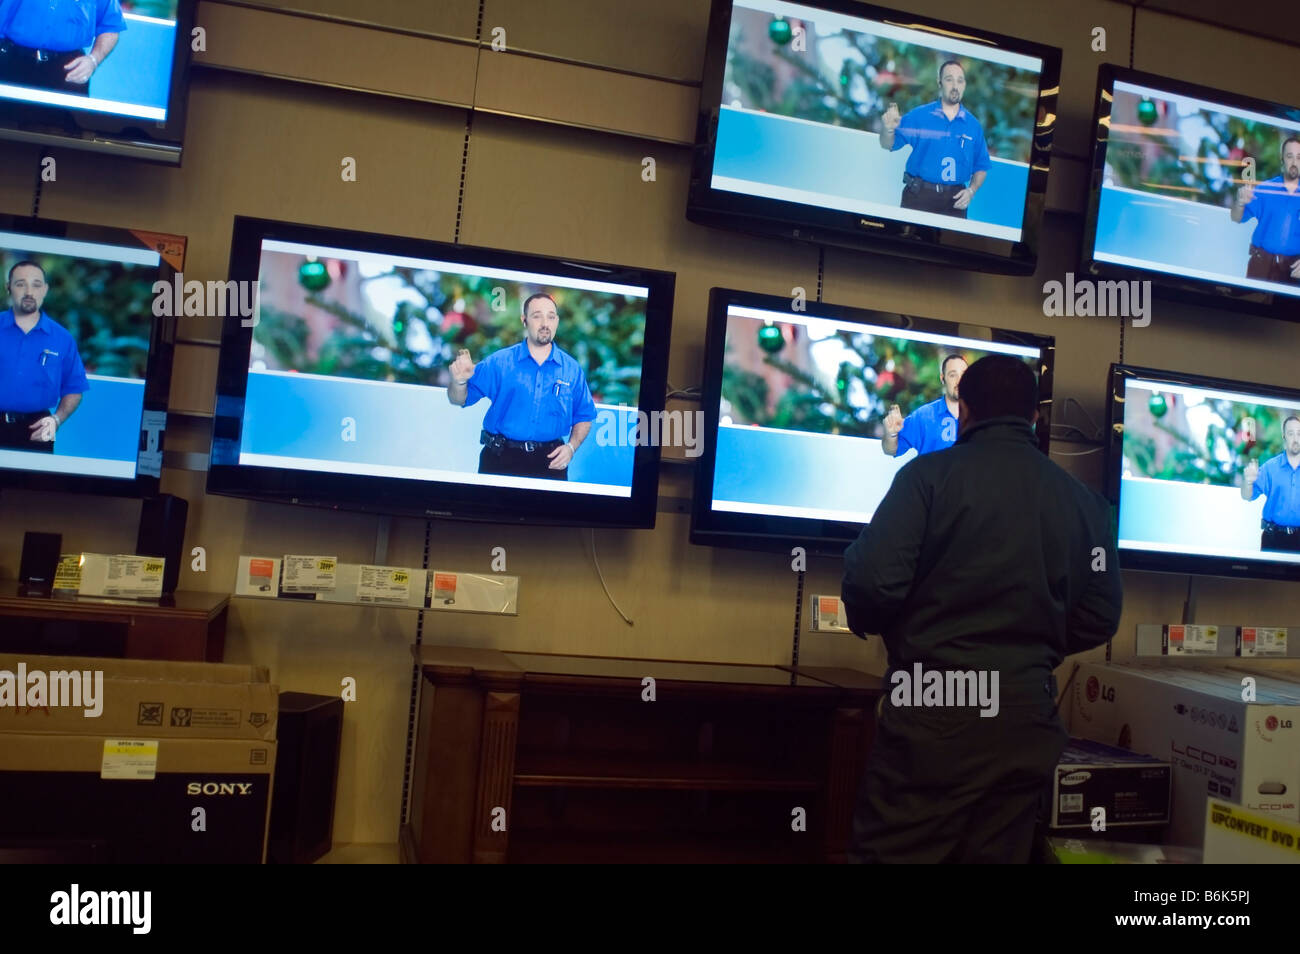 Customers Browse The Flat Screen Television Display At A Best Buy